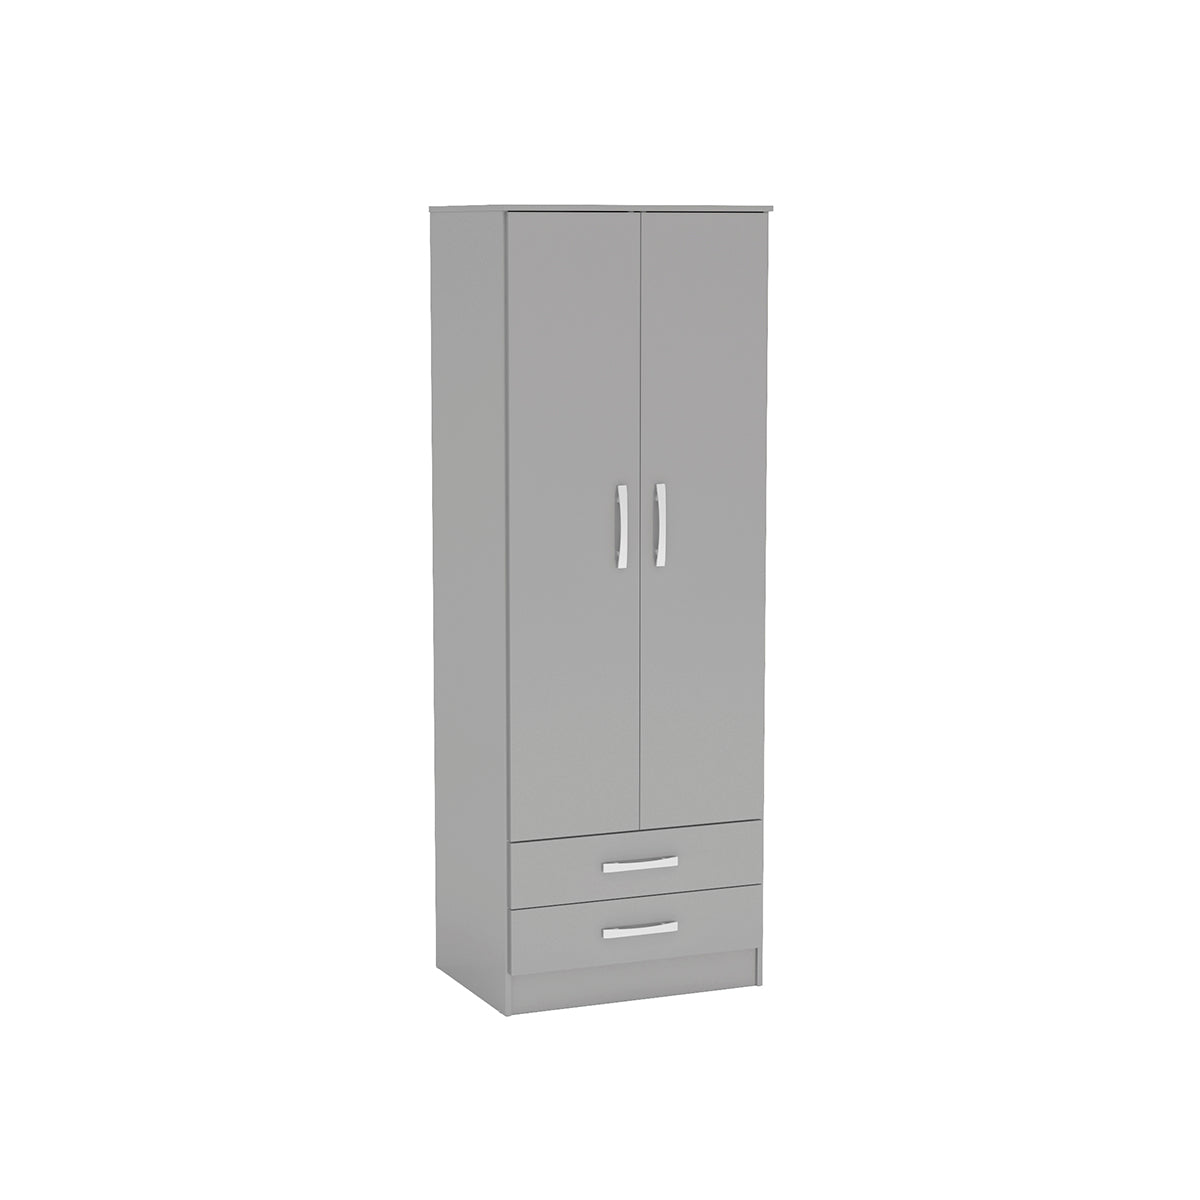 Heath 2 Door Combi Wardrobe in Grey - Ezzo